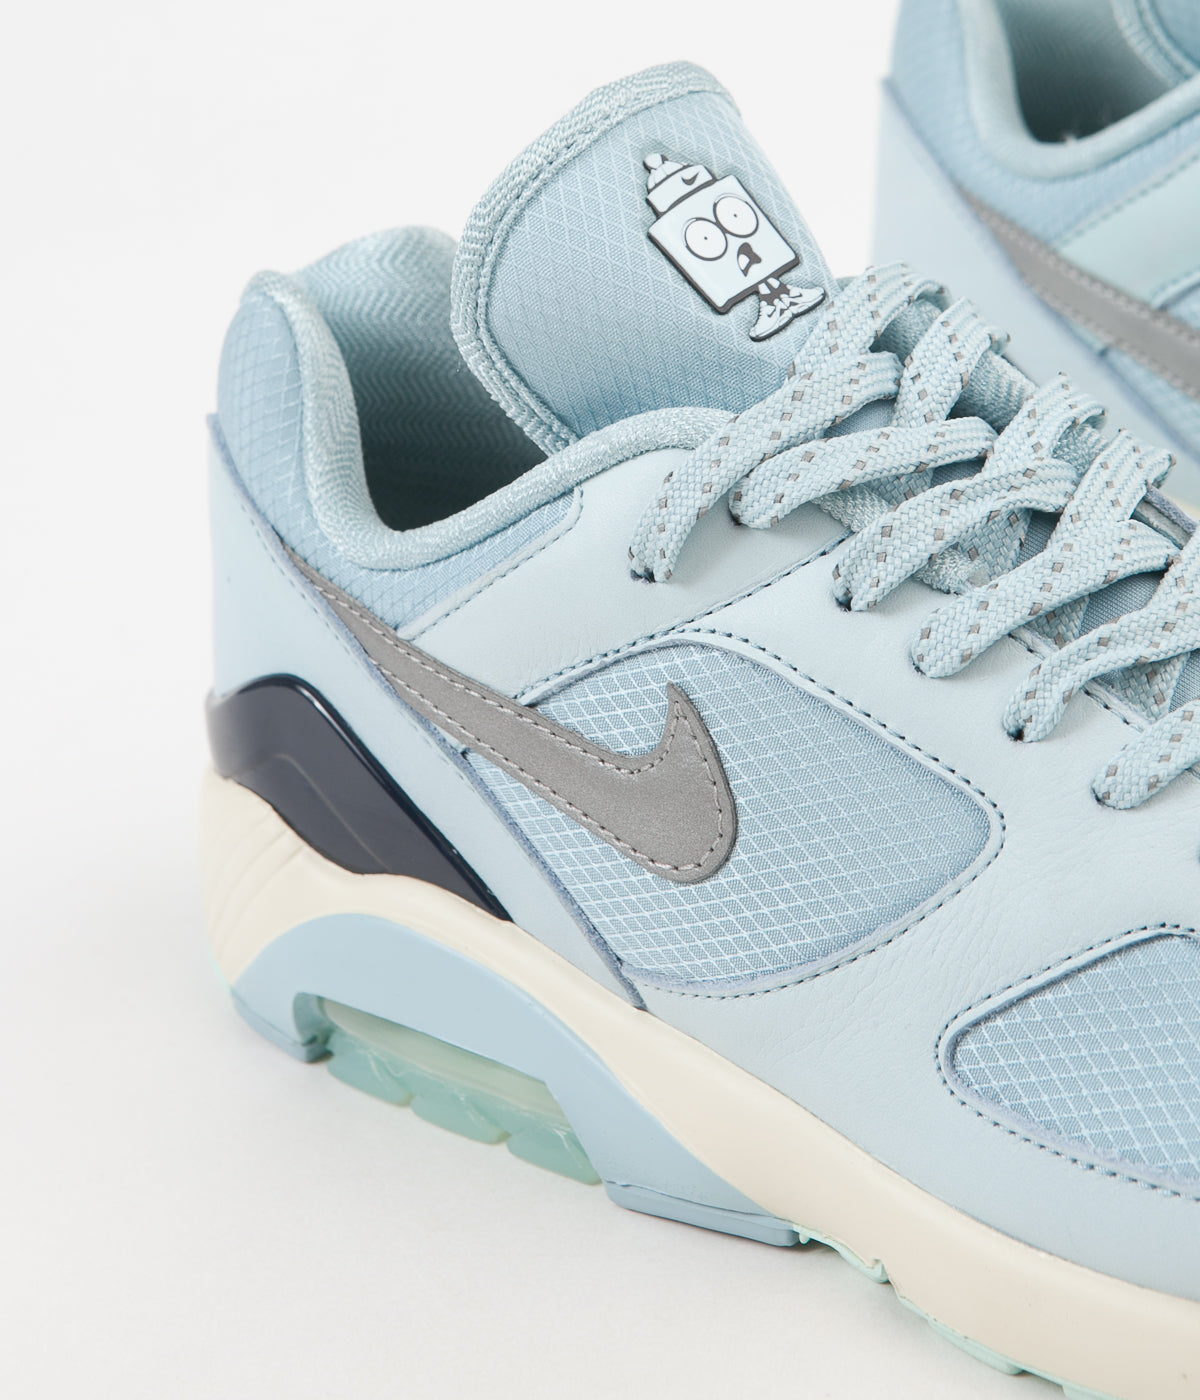 separation shoes 04f30 52d0f ... Nike Air Max 180 Shoes - Ocean Bliss   Metallic Silver - Igloo ...